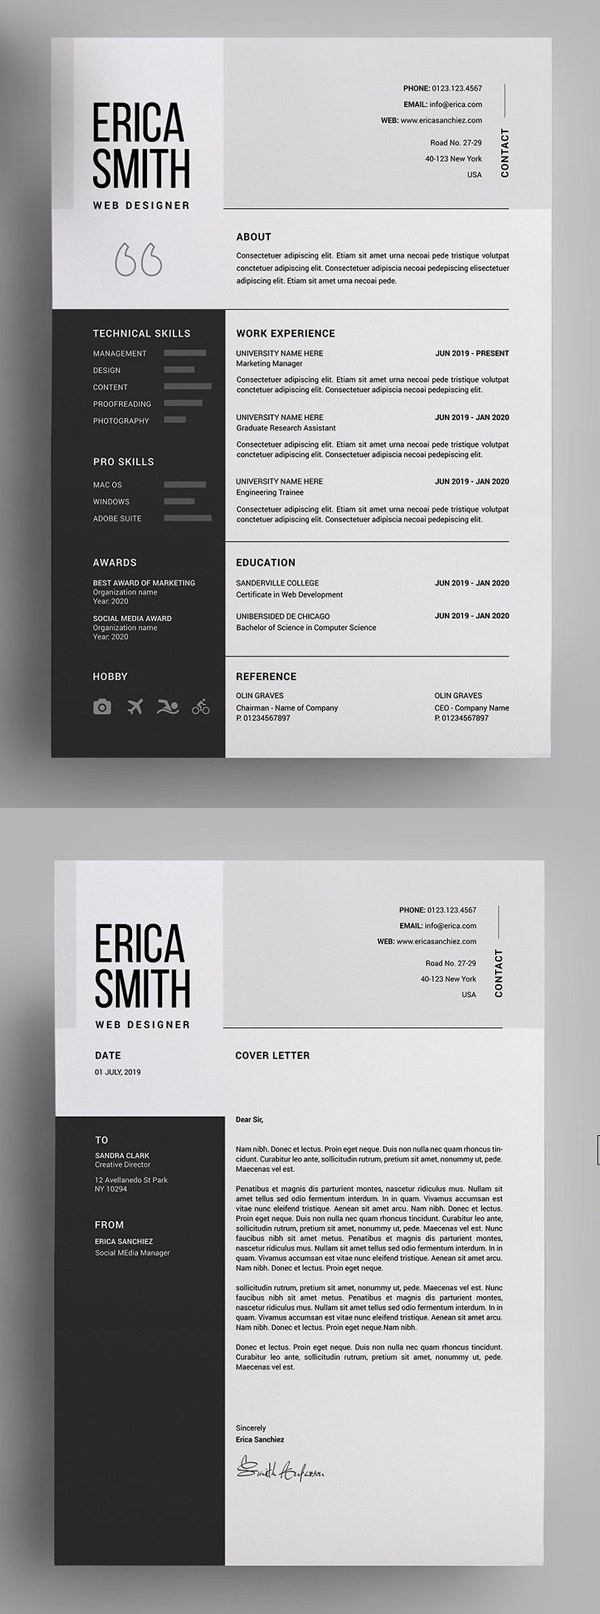 Clean, Modern and Professional Resume and Letterhead design